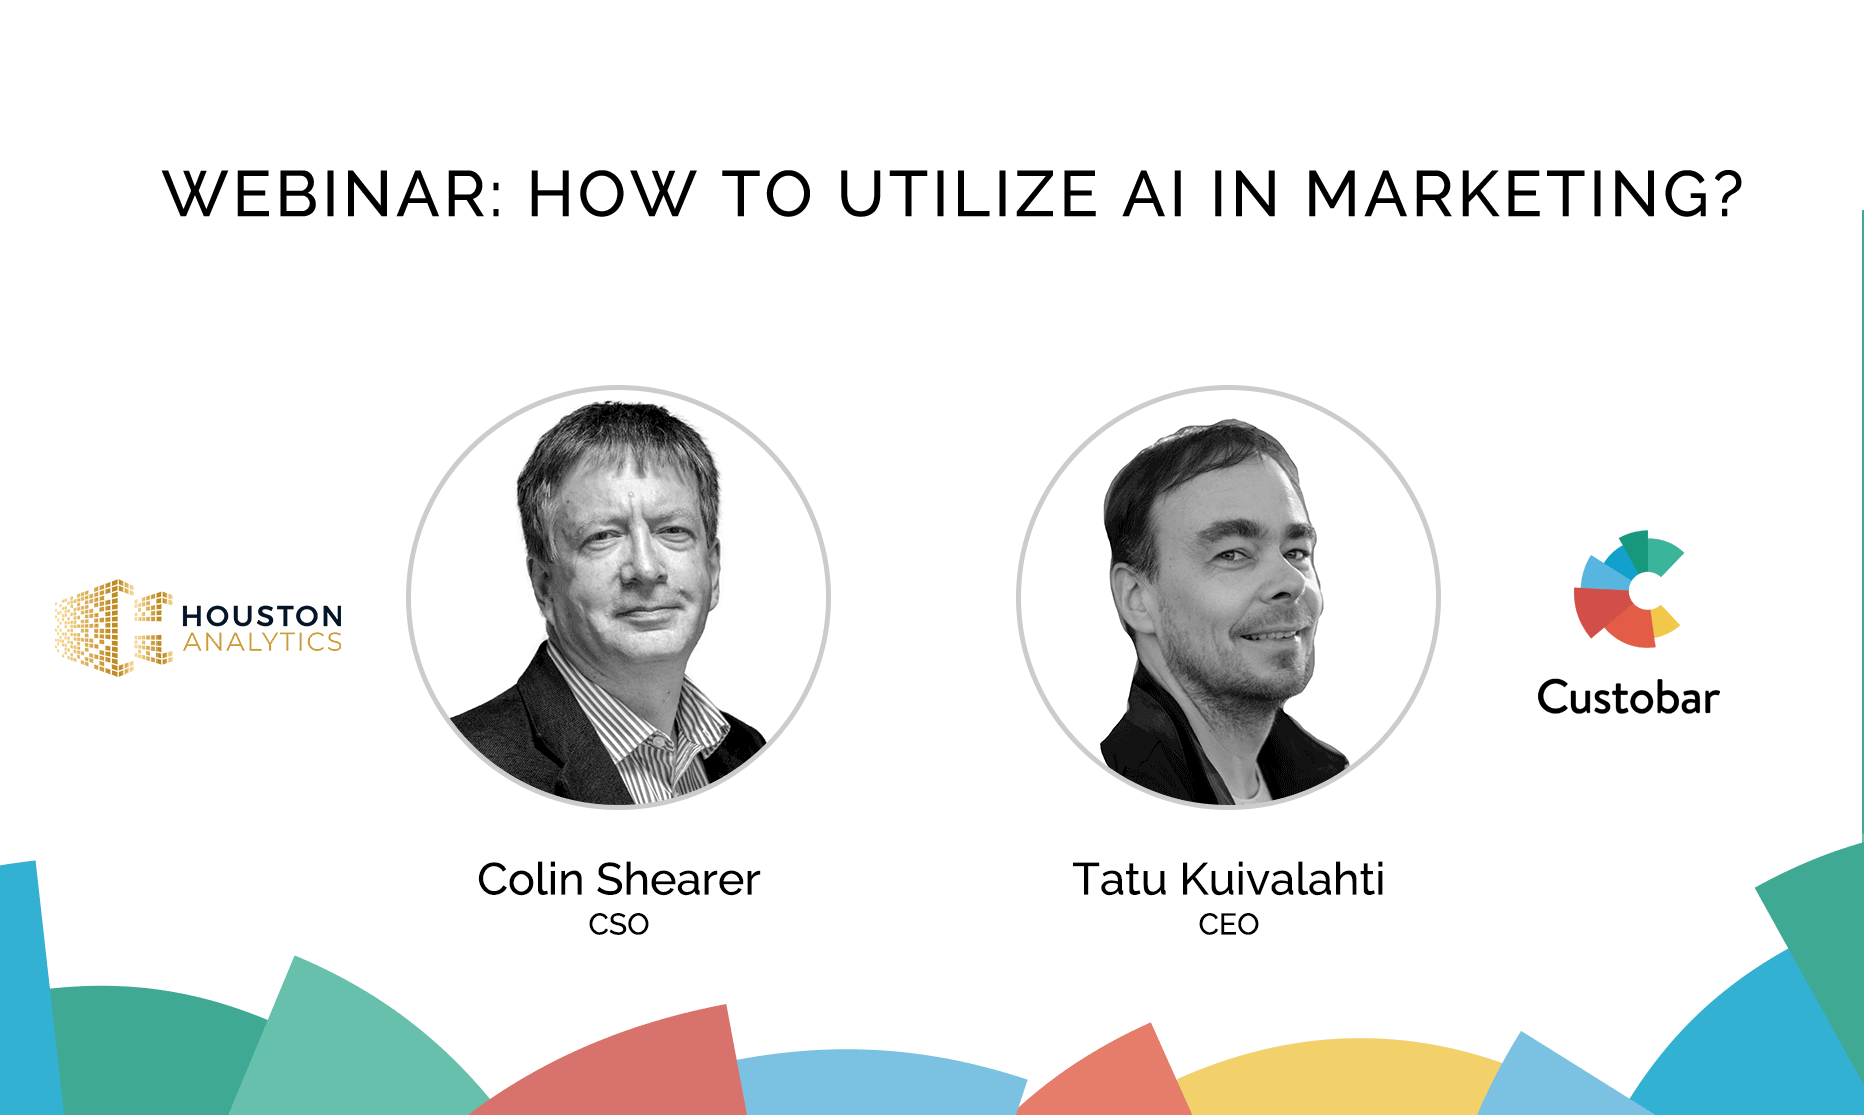 Webinar: How to utilize artificial intelligence in marketing?